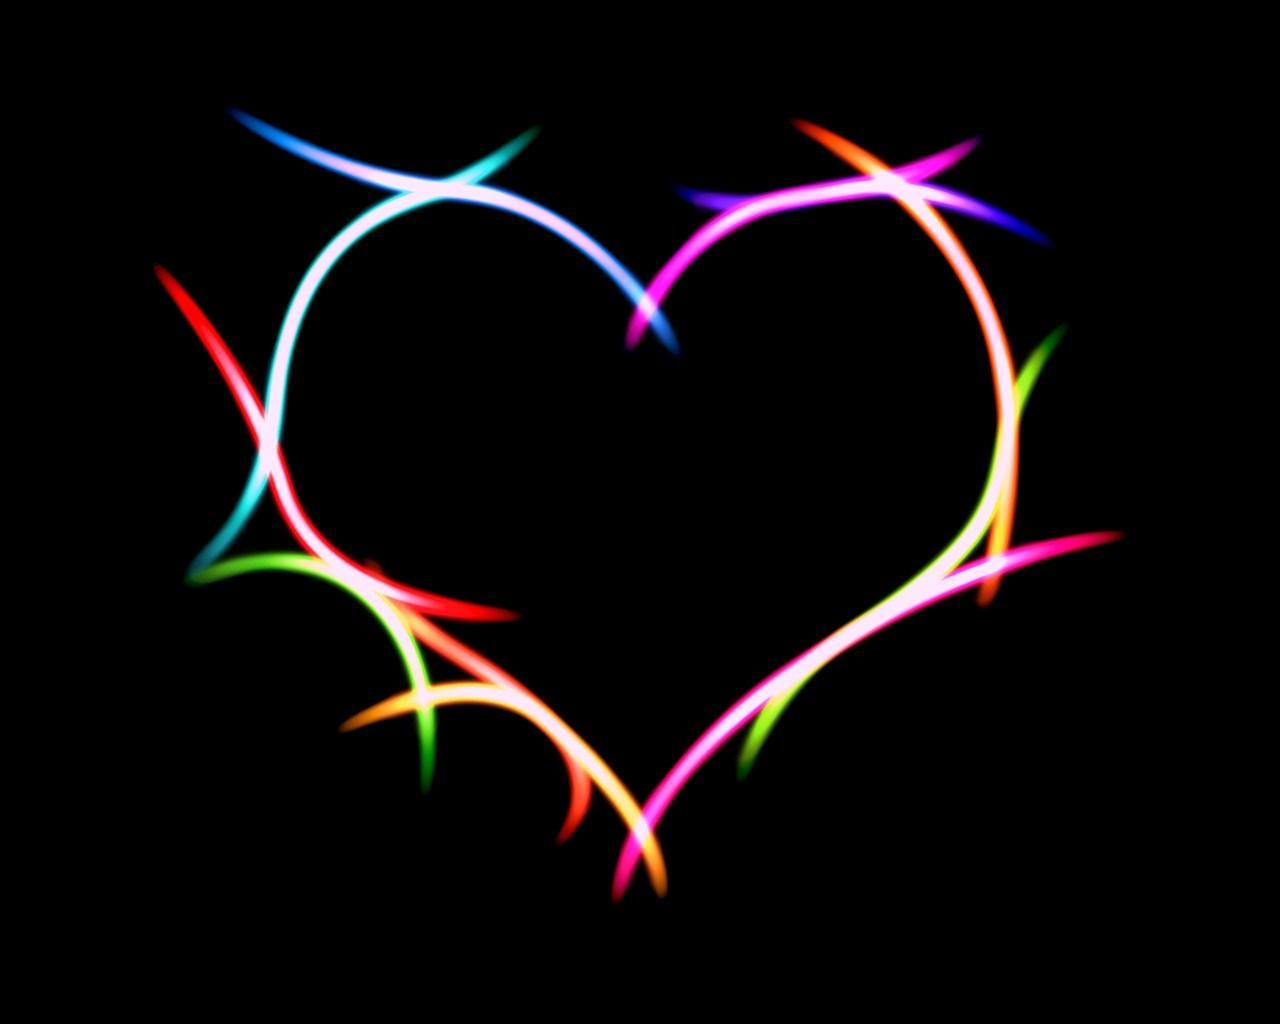 Neon Backgrounds For Girls More Free Pc Wallpaper For Your Desktop Backgrounds Heart Wallpaper Love Wallpaper Backgrounds Love Wallpaper